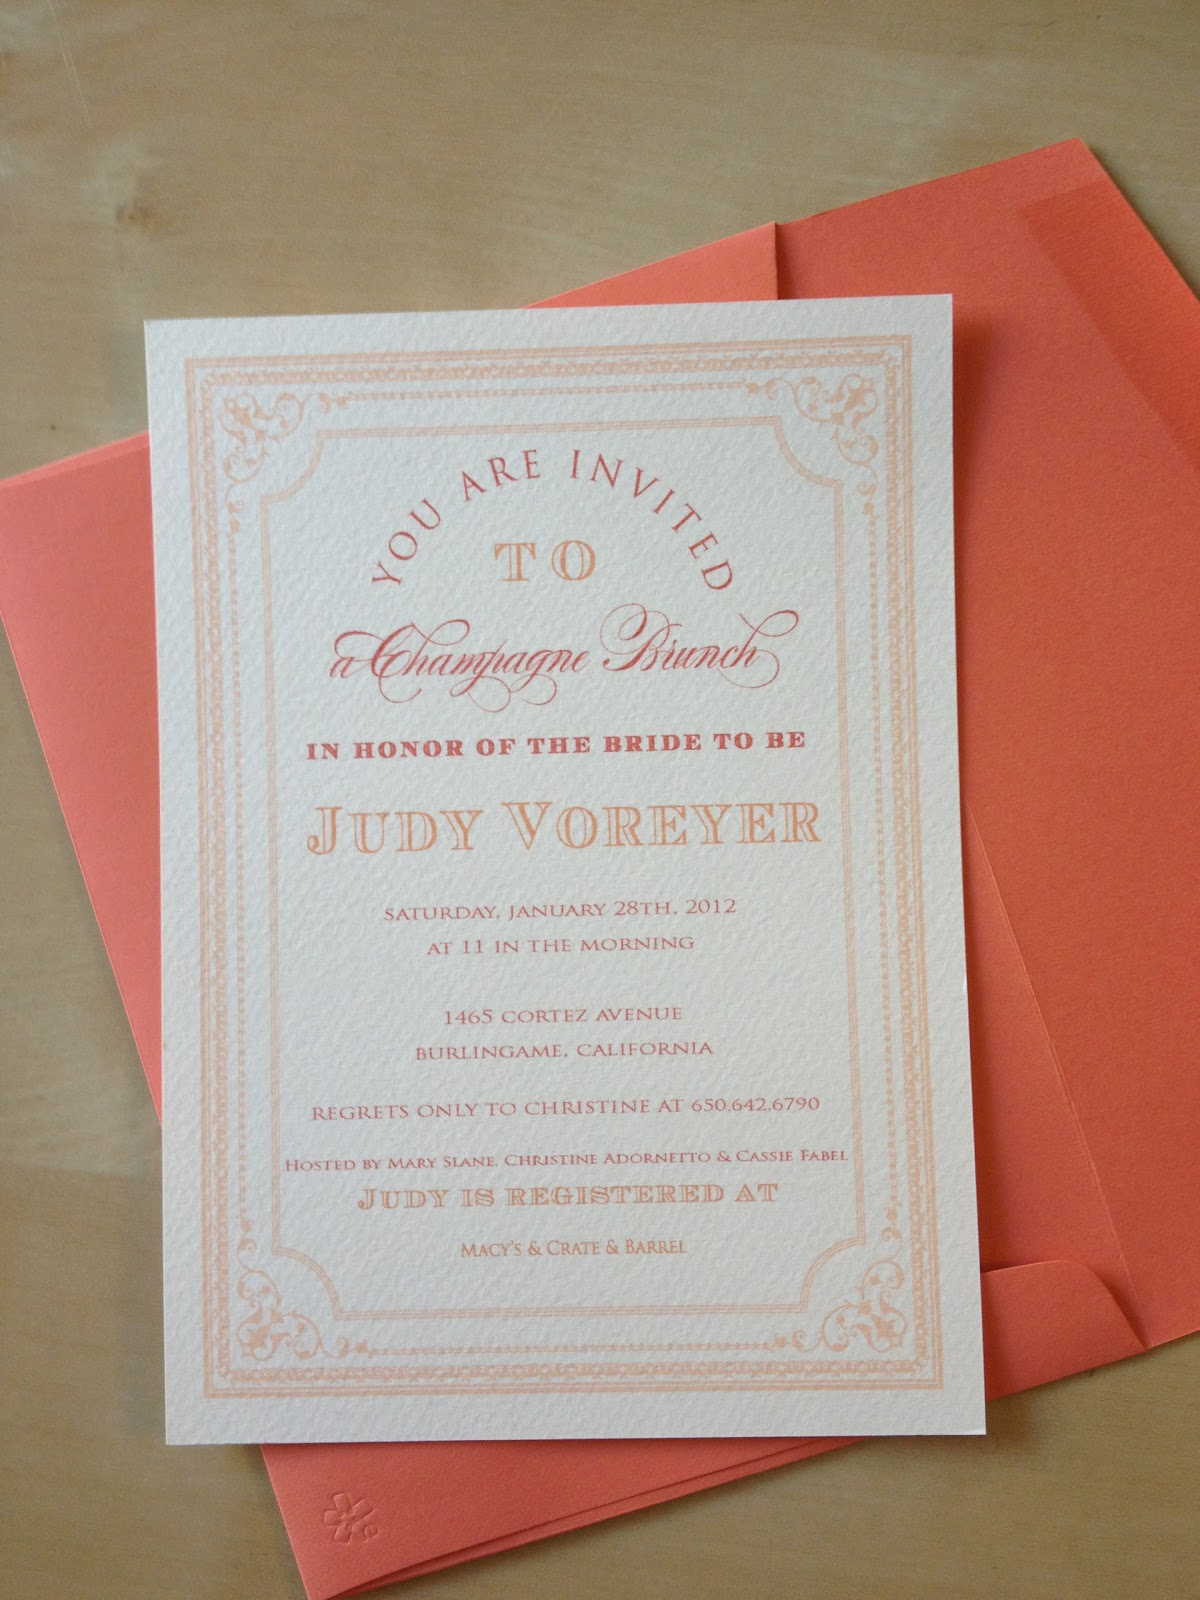 Stella bella invites champagne brunch bridal shower invite for Wedding brunch invitations